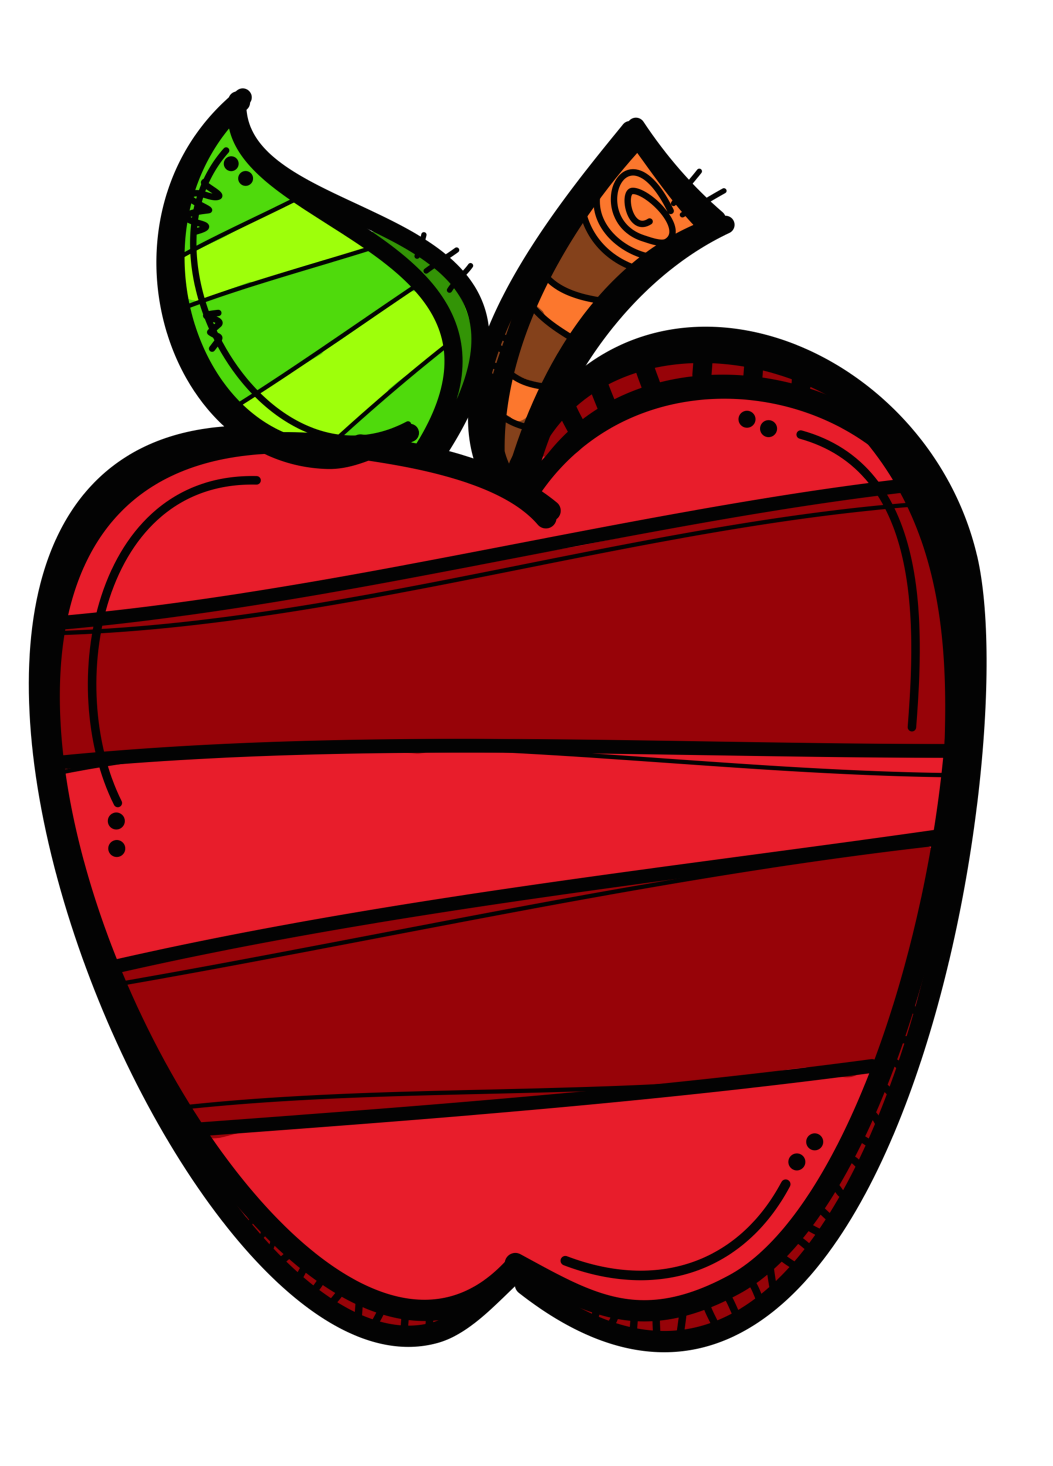 Back to school apple clipart svg free download Pin by Kathleen Cummings on Art Ideas | Pinterest | Apples, Clip art ... svg free download